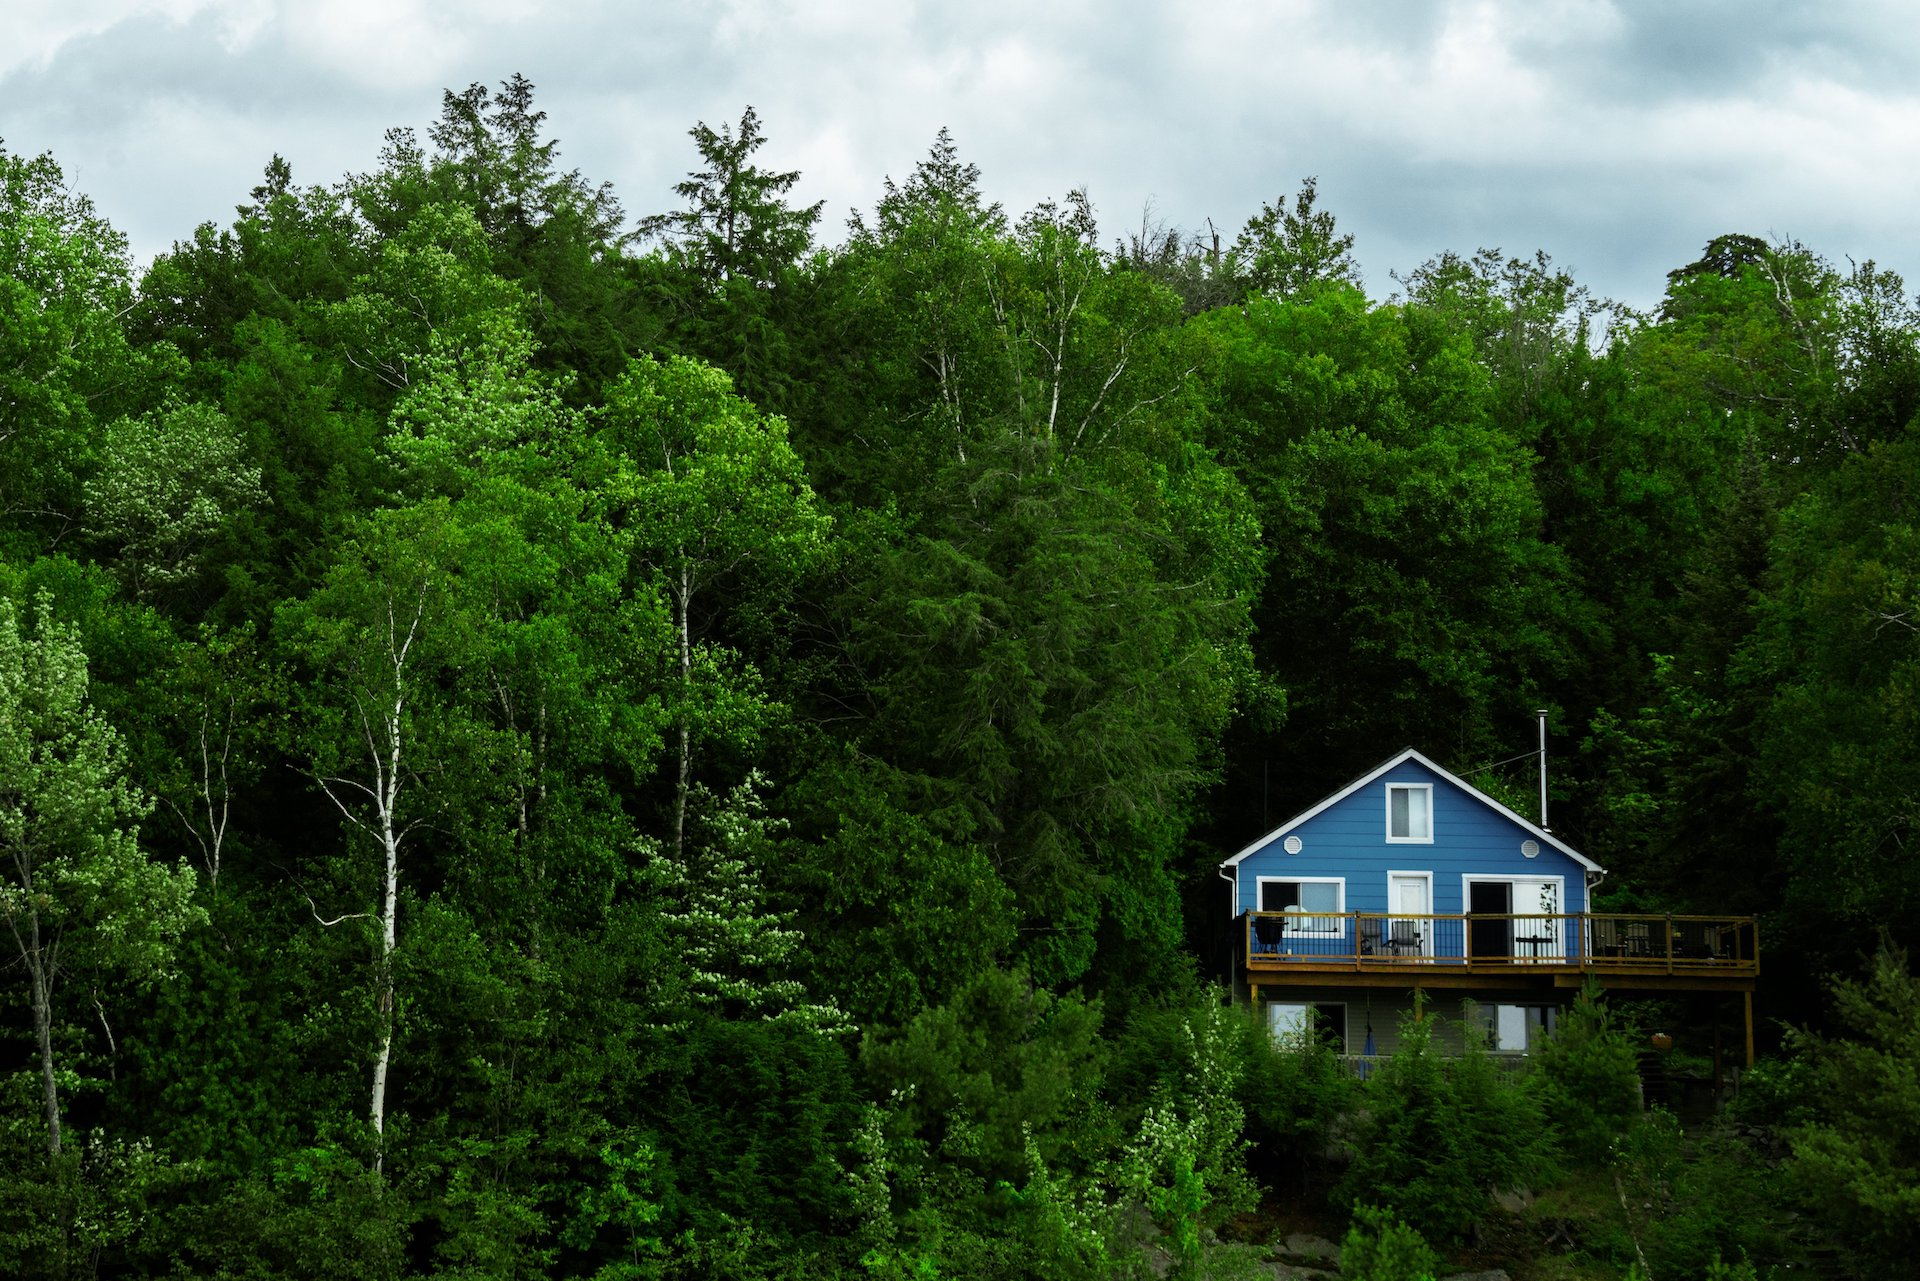 blue-cottage-in-green-forest-IRA-custodian